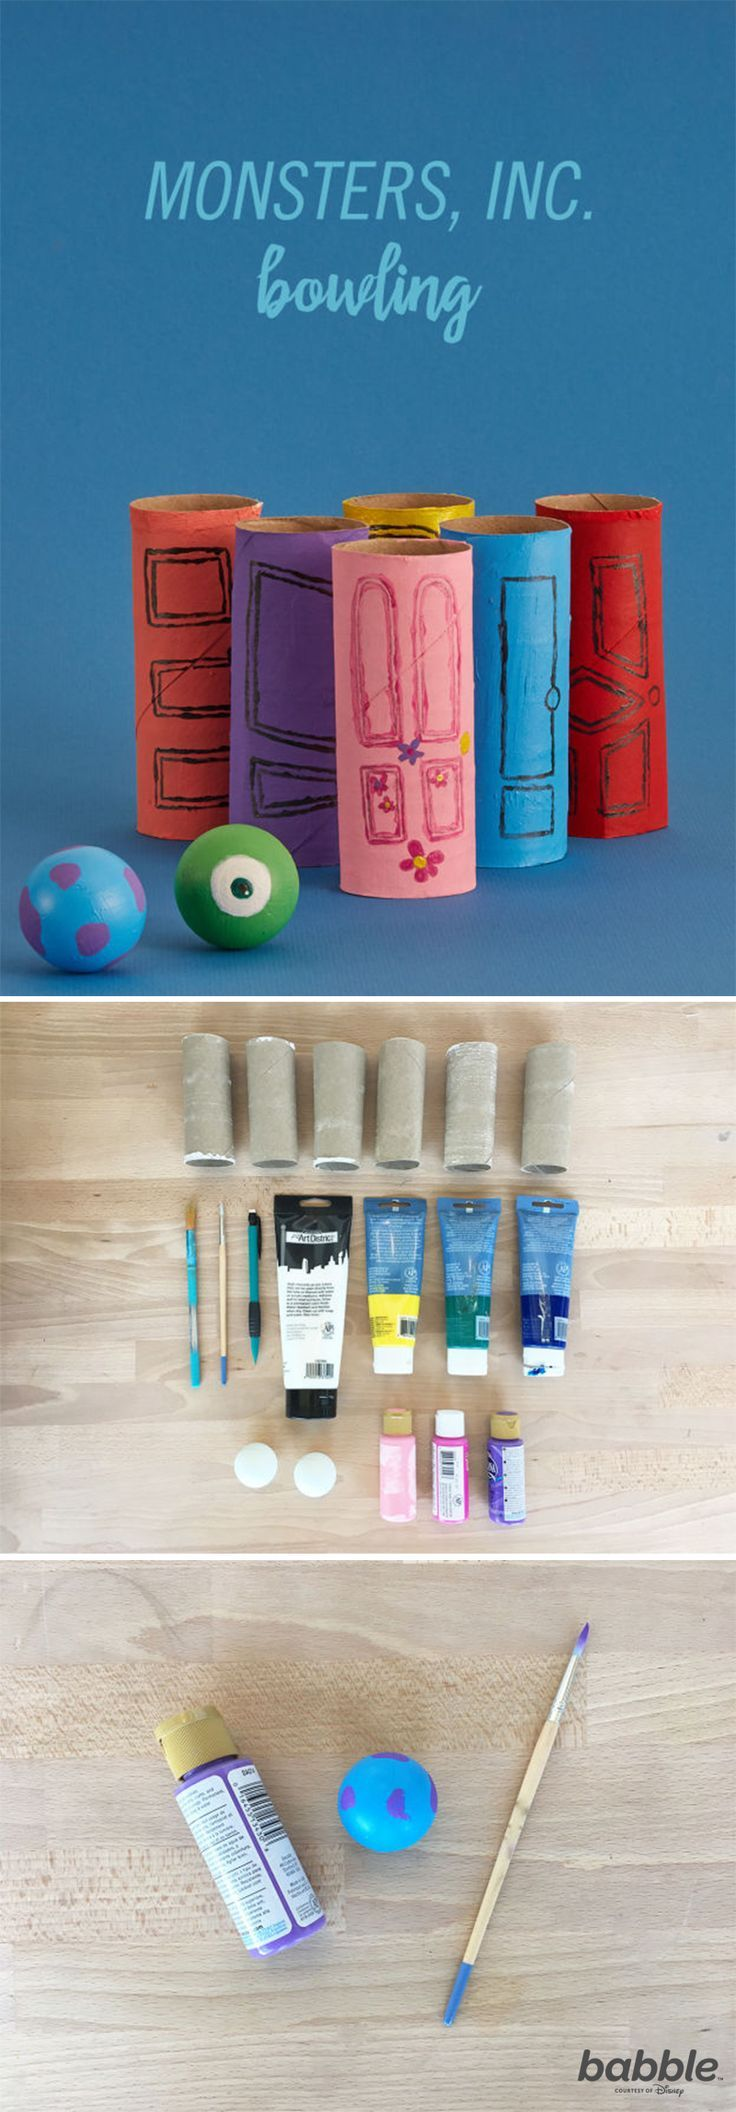 A round of bowling is always fun, but it's not exactly toddler-friendly. This DIY Monsters, Inc. Bowling game is the perfect way to let the whole family in on the classic activity. It's a simple craft to make. Grab some paint, ping pong balls, and toilet paper rolls around the house to help Mike and Sulley get their scare game rolling, to conquer each of these Monsters, Inc. doors! Enjoy the game this summer while cooling off indoors, or set it up outside for some fun in the sun with your…